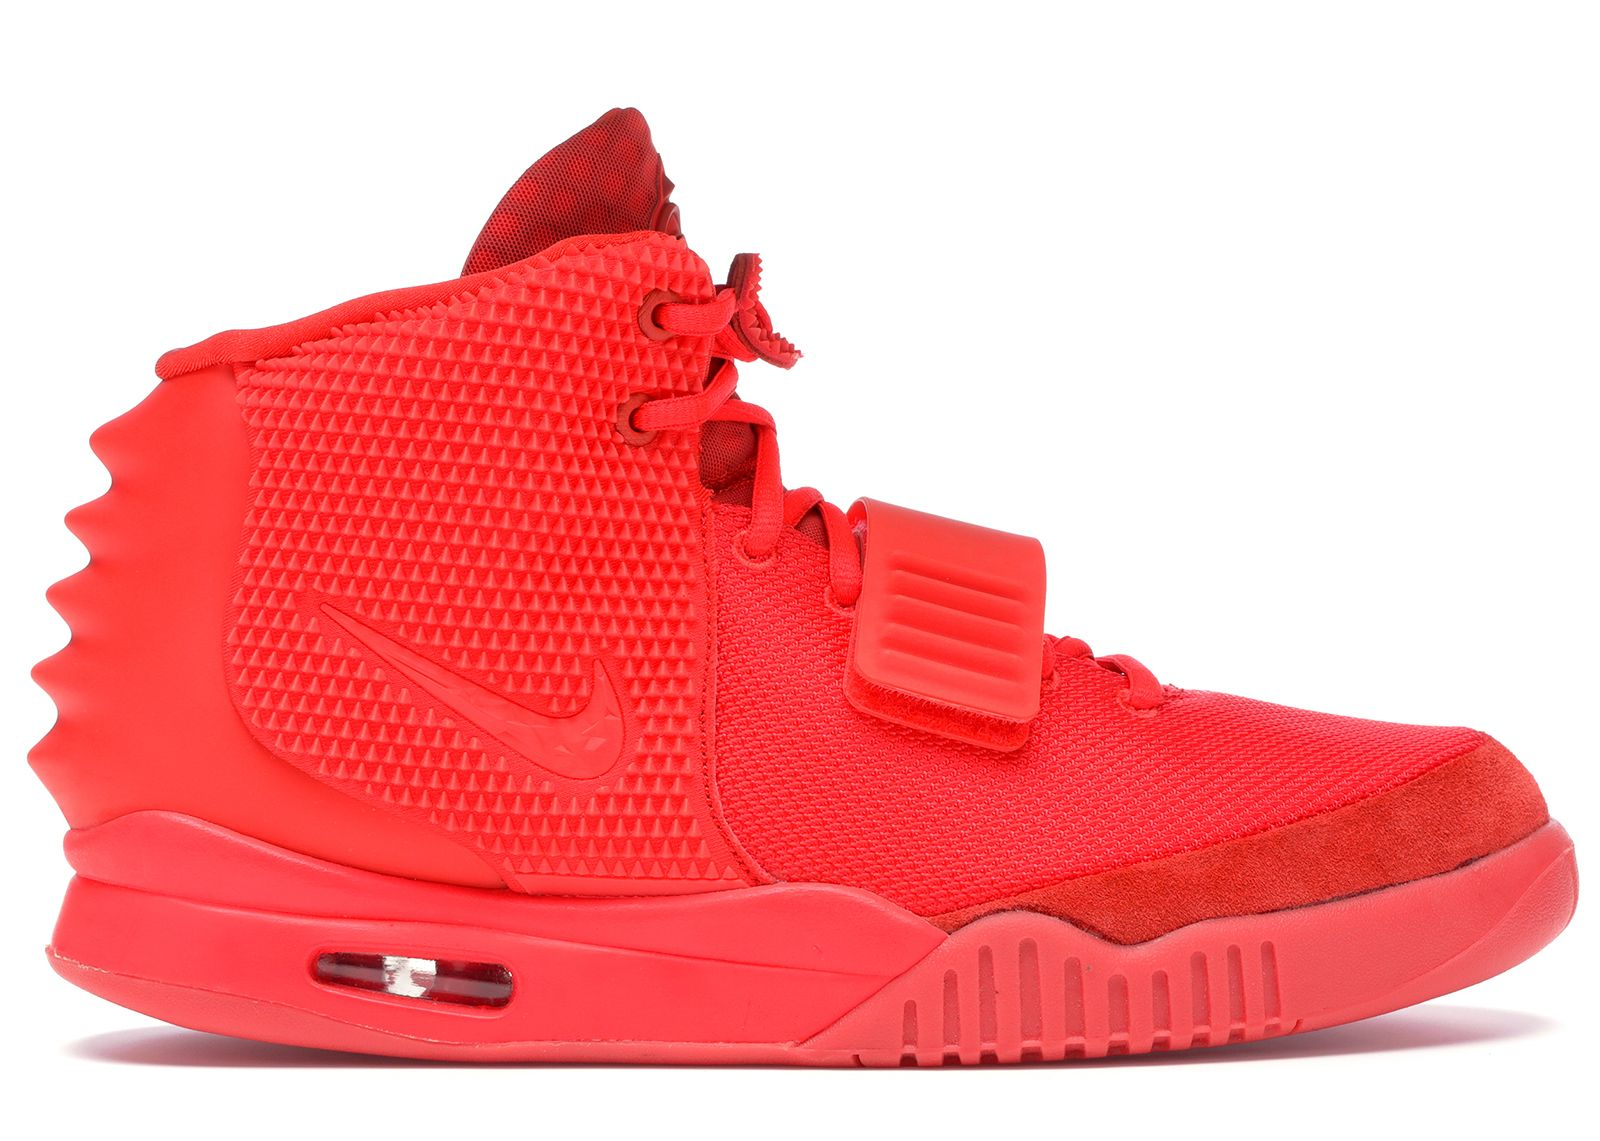 NIKE AIR YEEZY 2 RED OCTOBER. #nike #shoes | Yeezy 2 red october